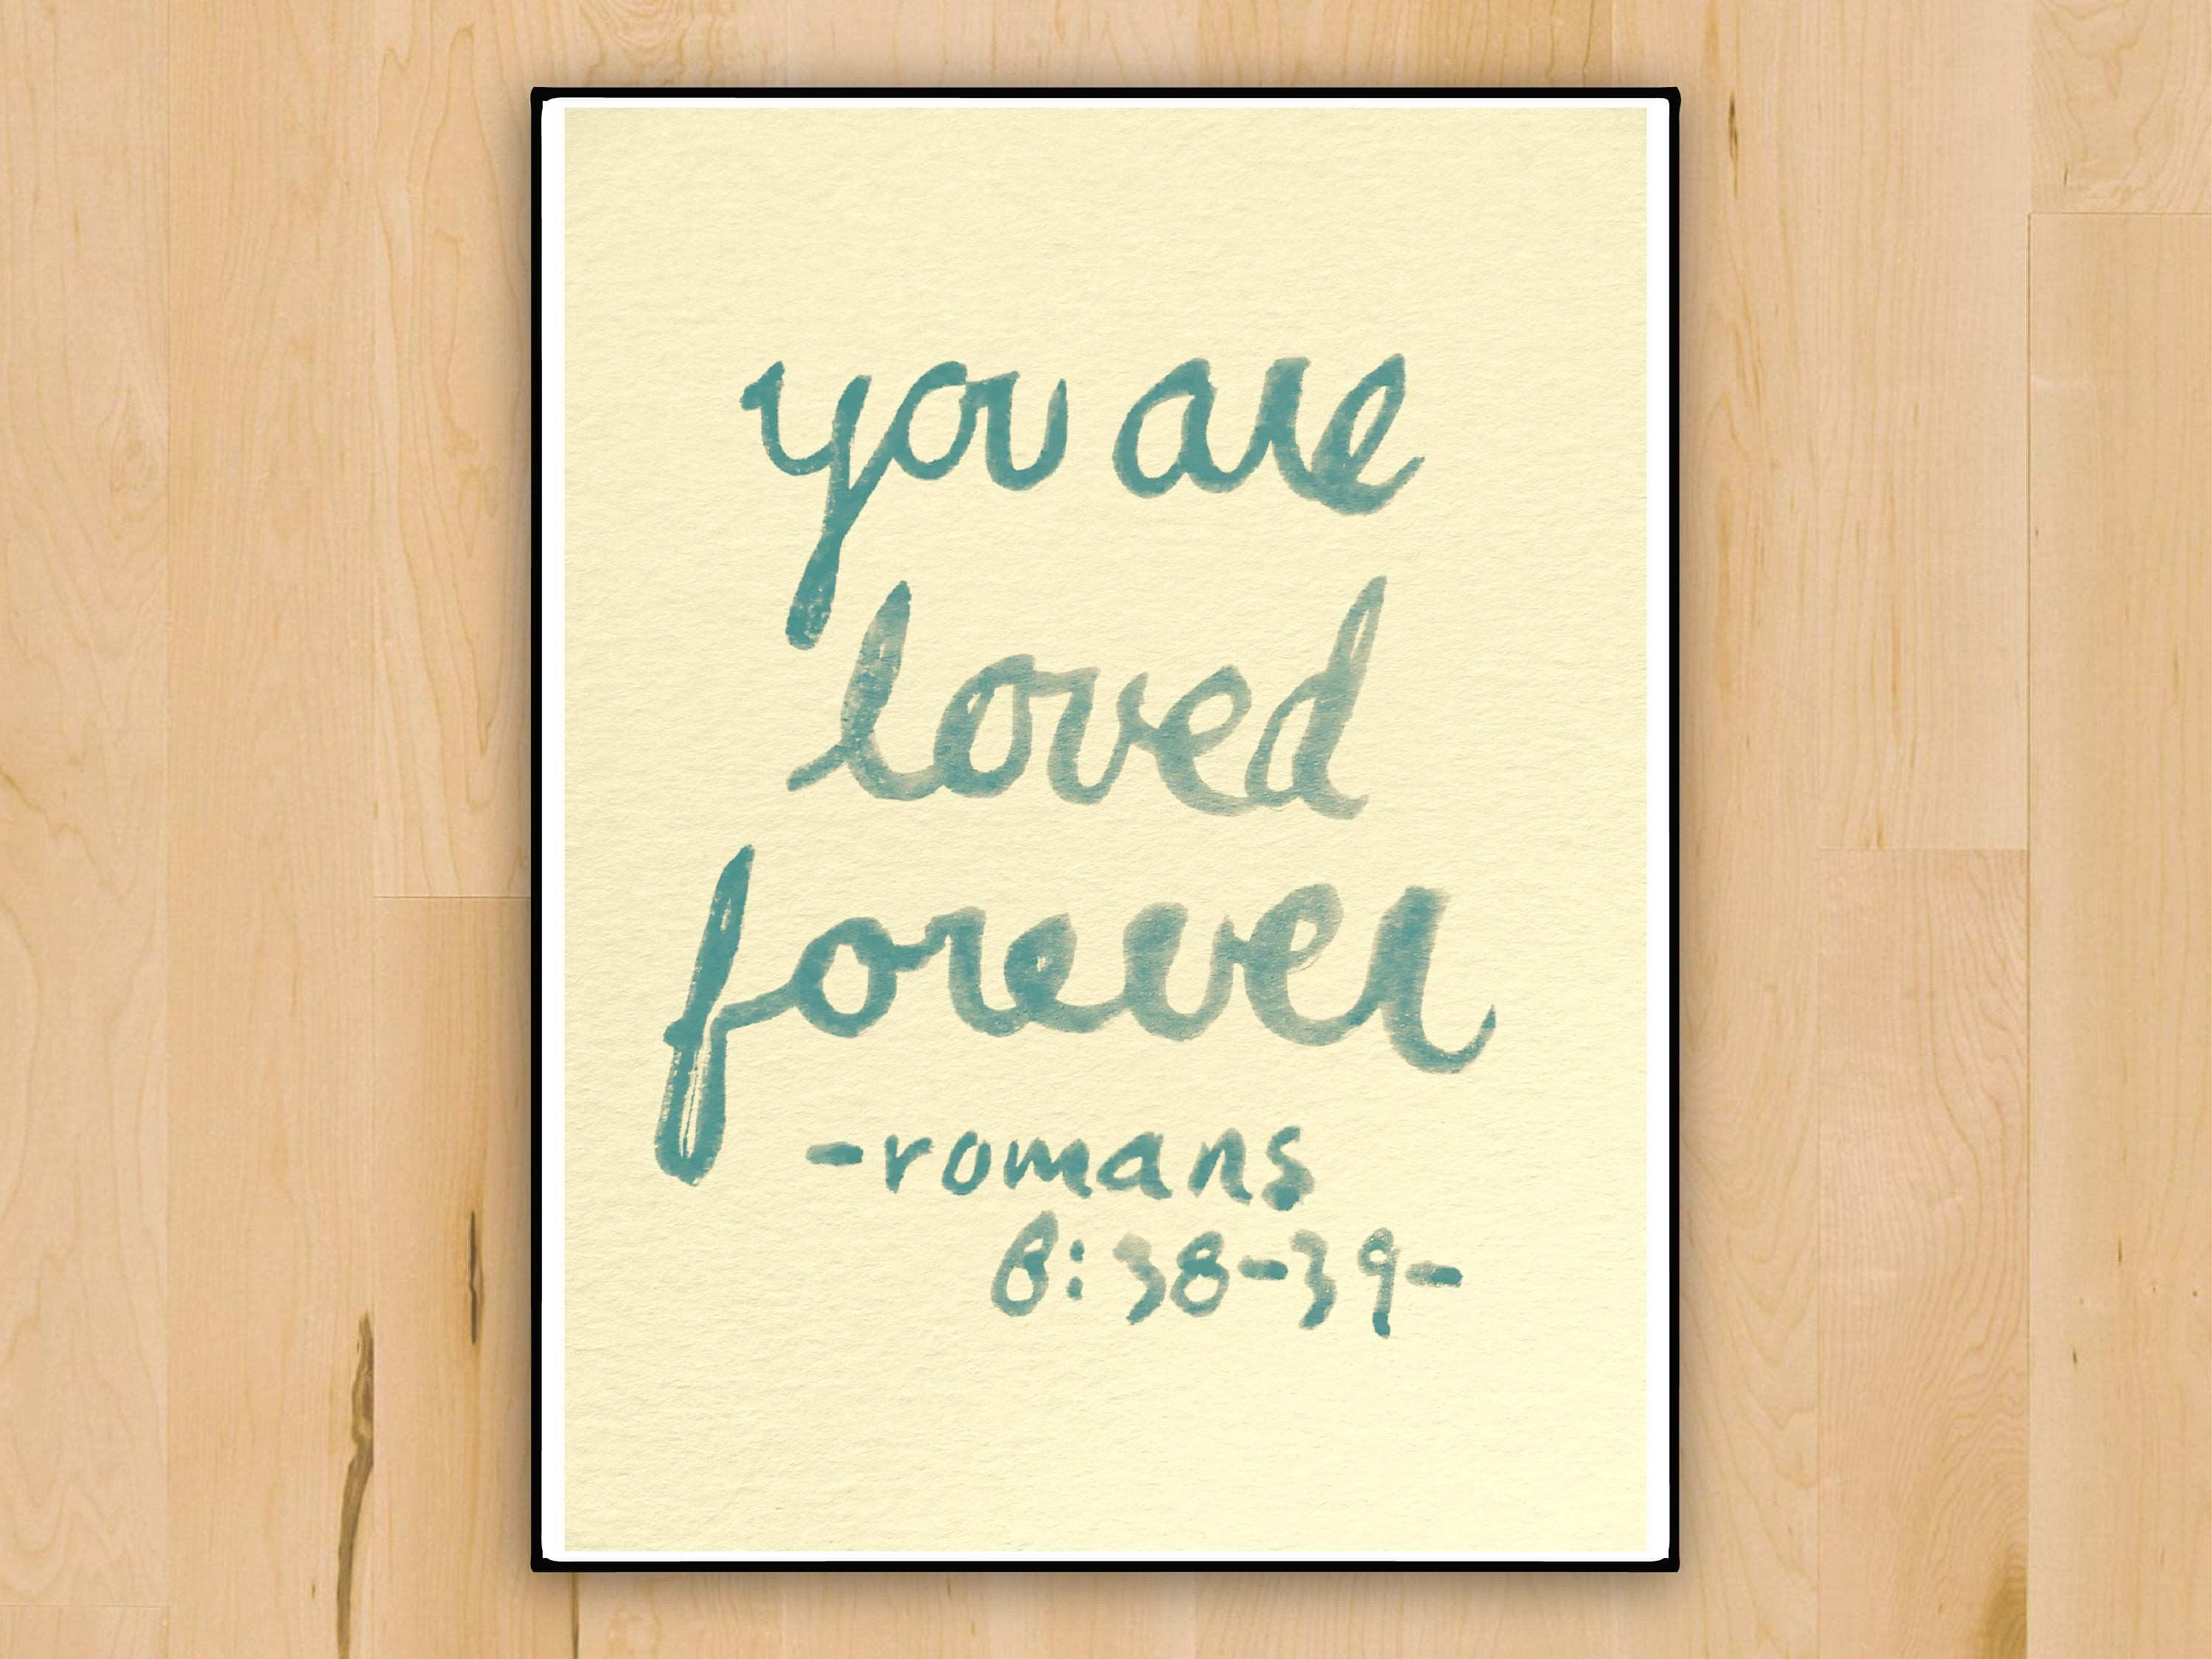 Awesome Wall Decor Bible Verses Adornment The Wall Art Decorations